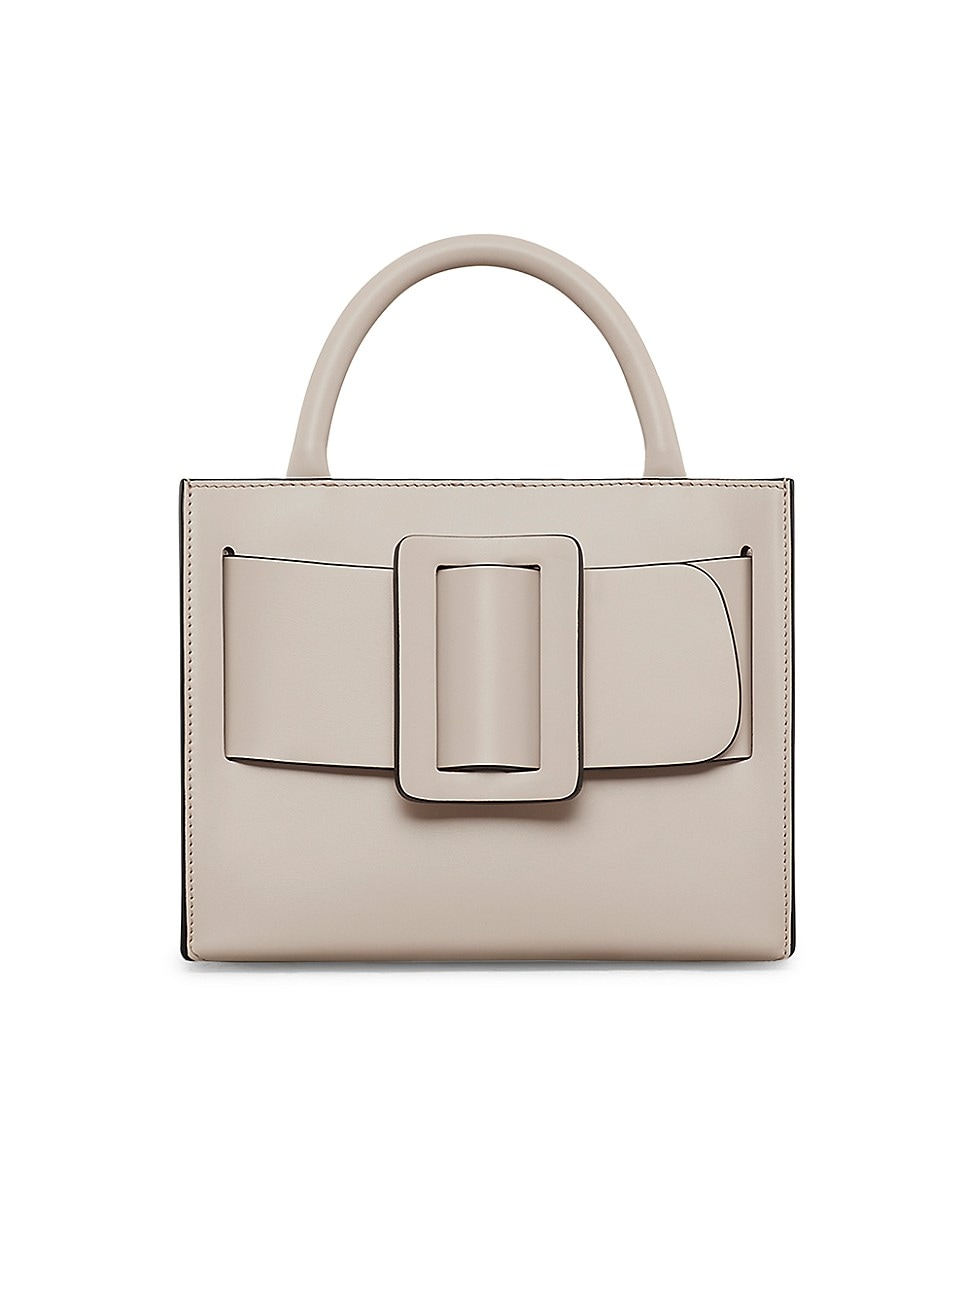 Boyy WOMEN'S BOBBY LEATHER TOTE